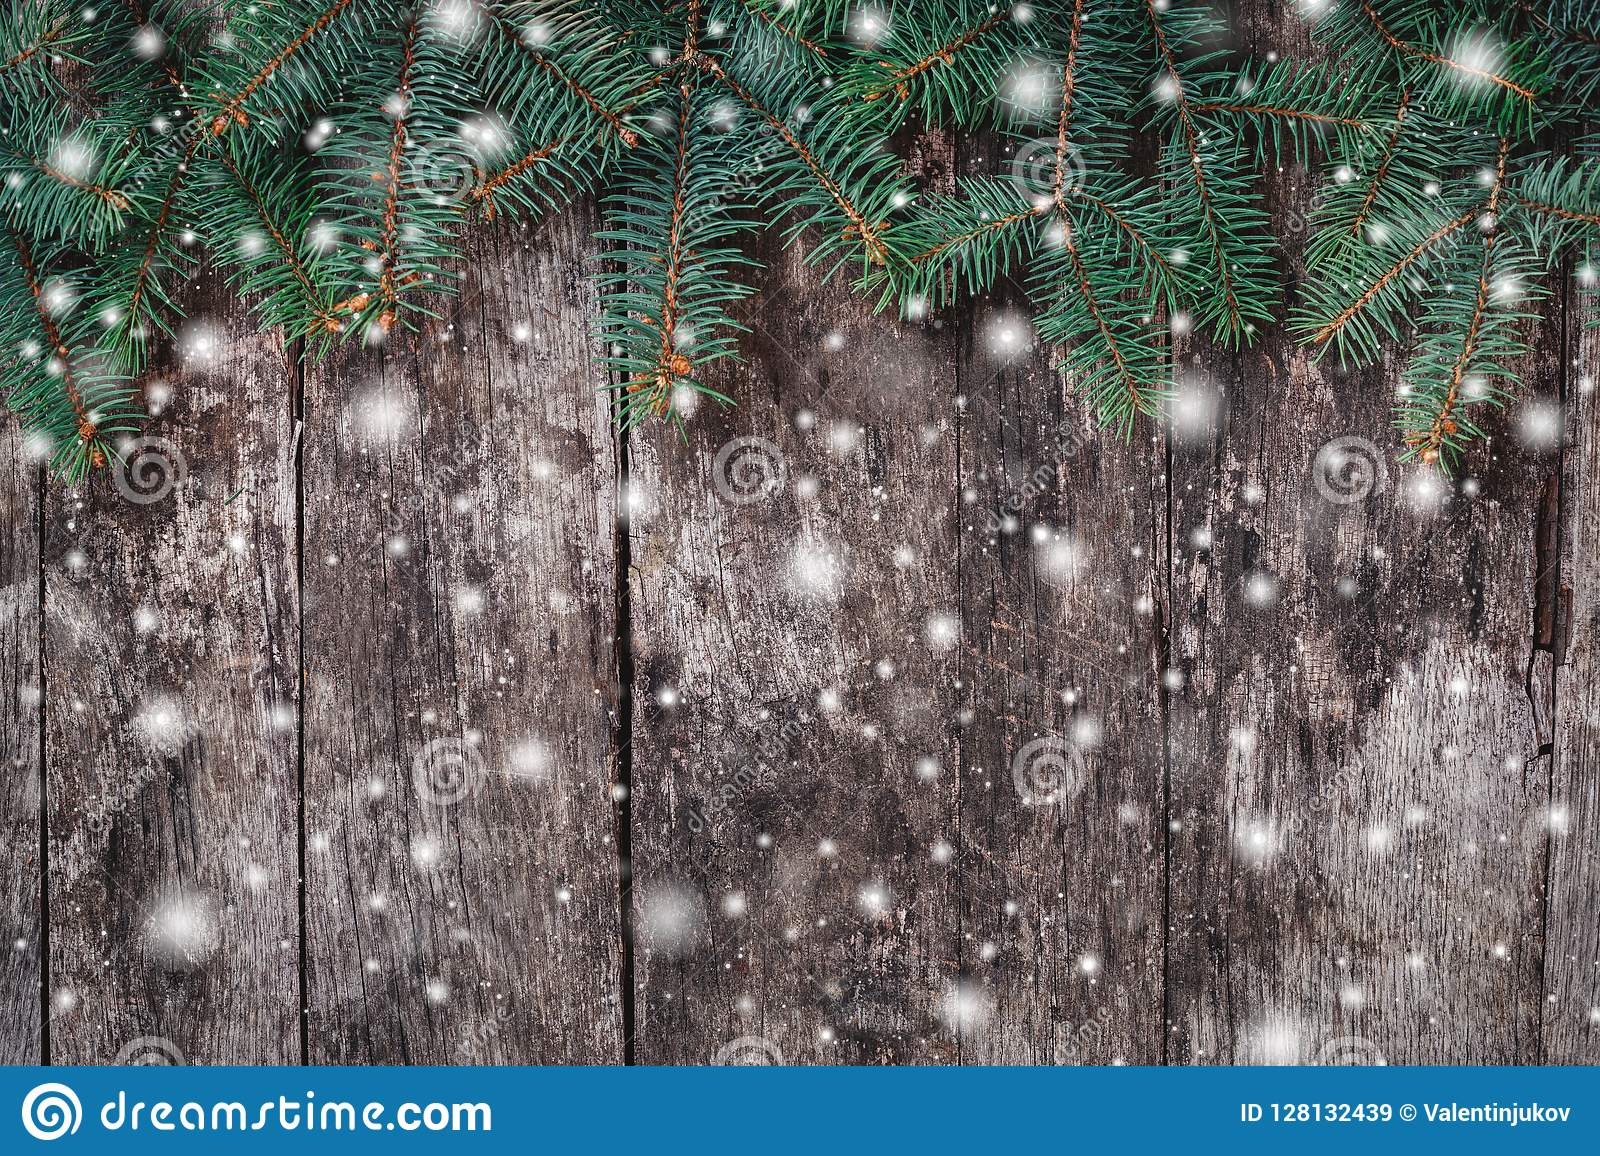 Christmas Fir branches on wooden background. Xmas and Happy New Year composition.